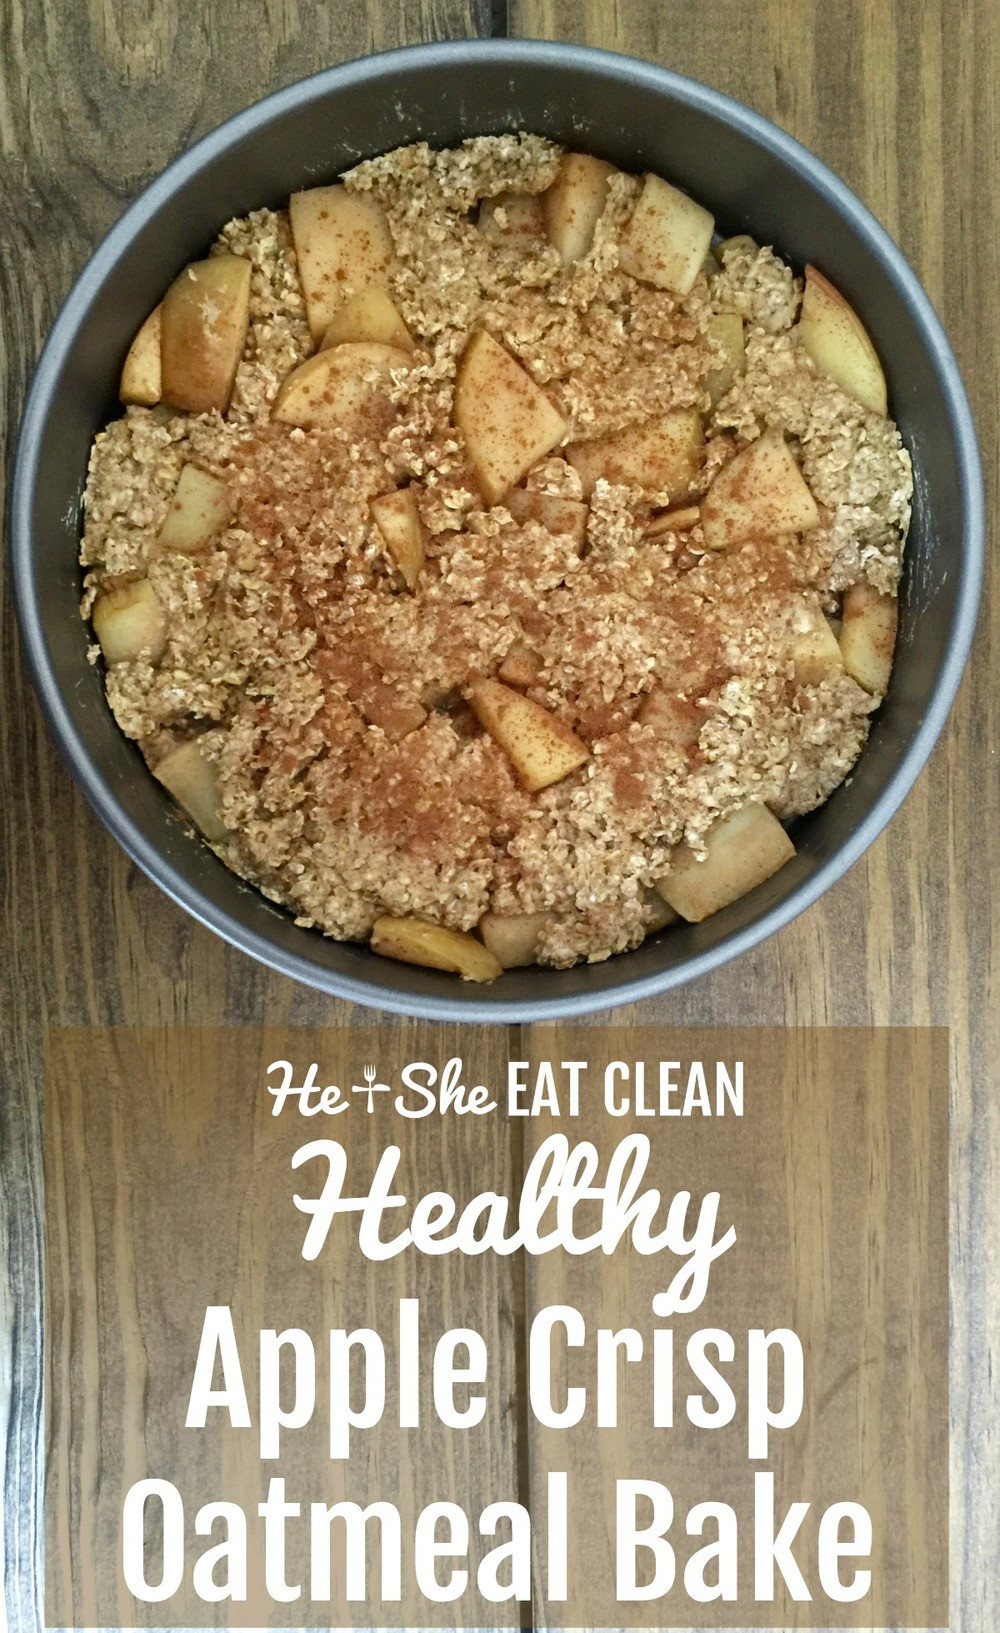 Healthy Apple Crisp Recipes  Clean Eat Recipe Healthy Apple Crisp Oatmeal Bake — He